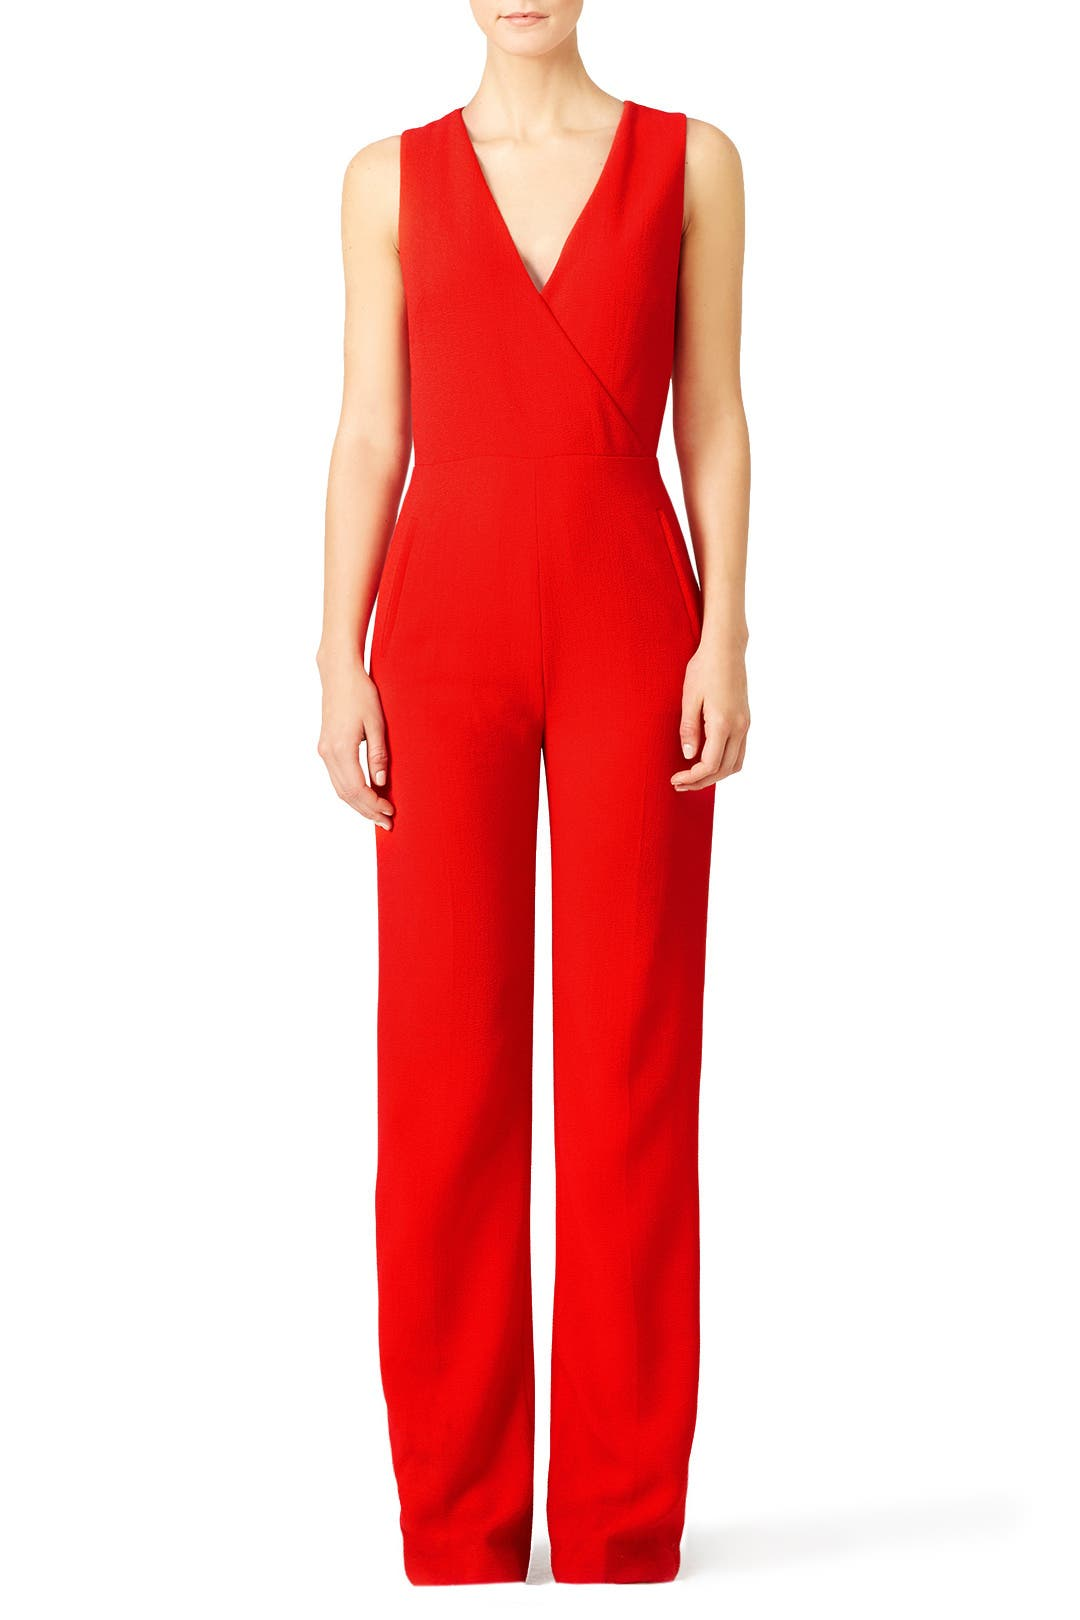 Tory Burch Red Pebbled Crepe Jumpsuit